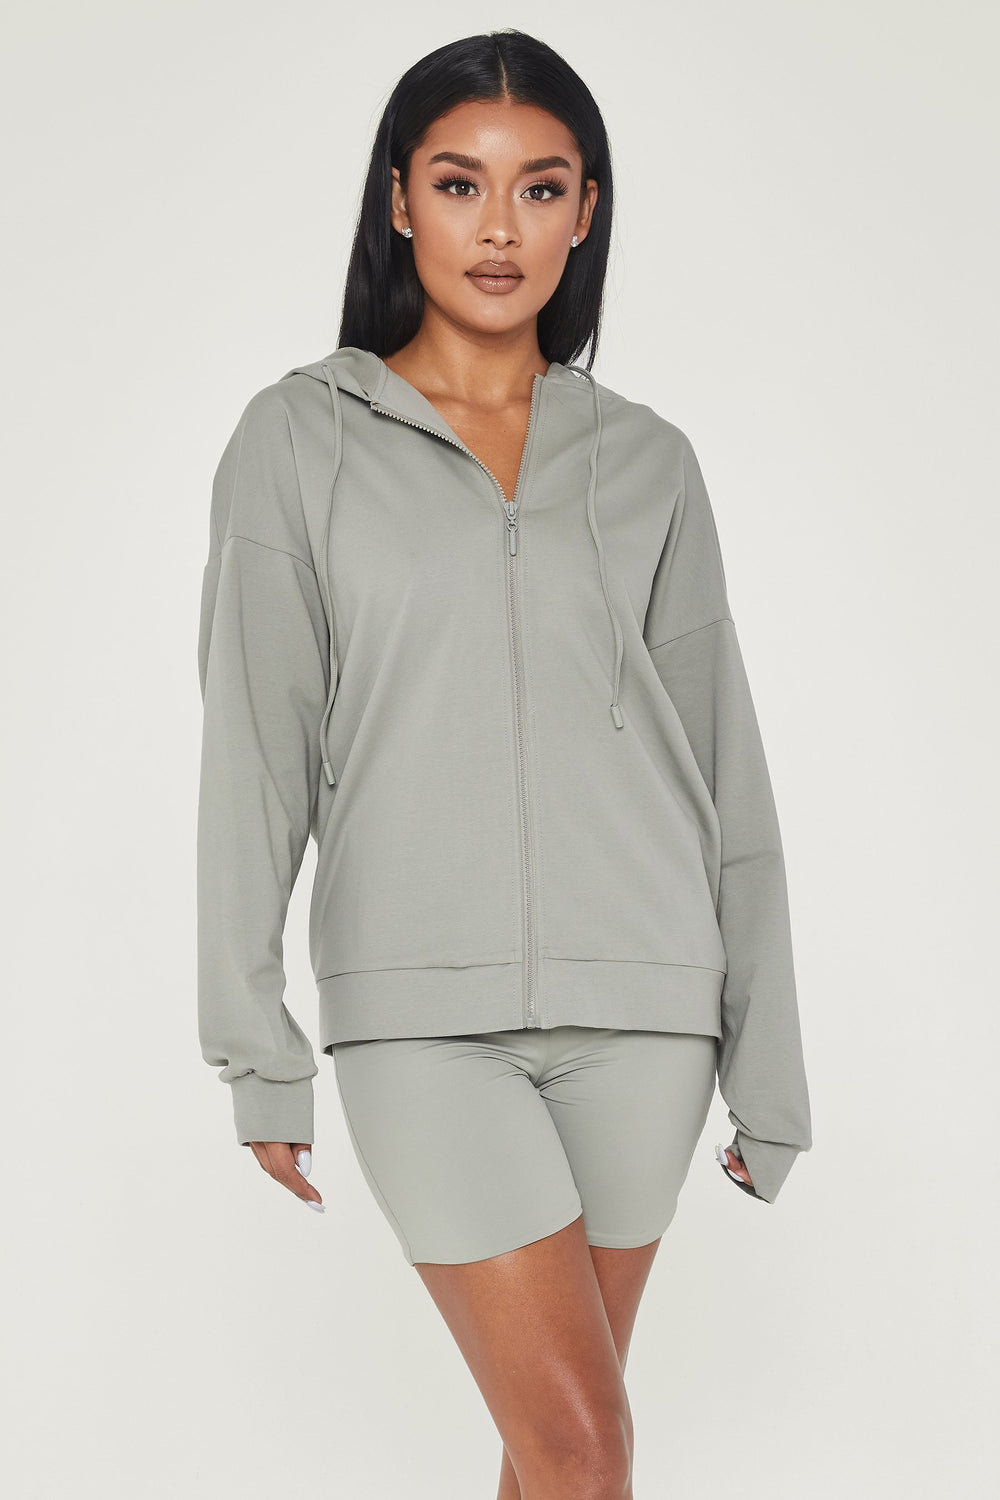 Maia Long Sleeve Zip Up Hoodie Jacket - Sage - MESHKI